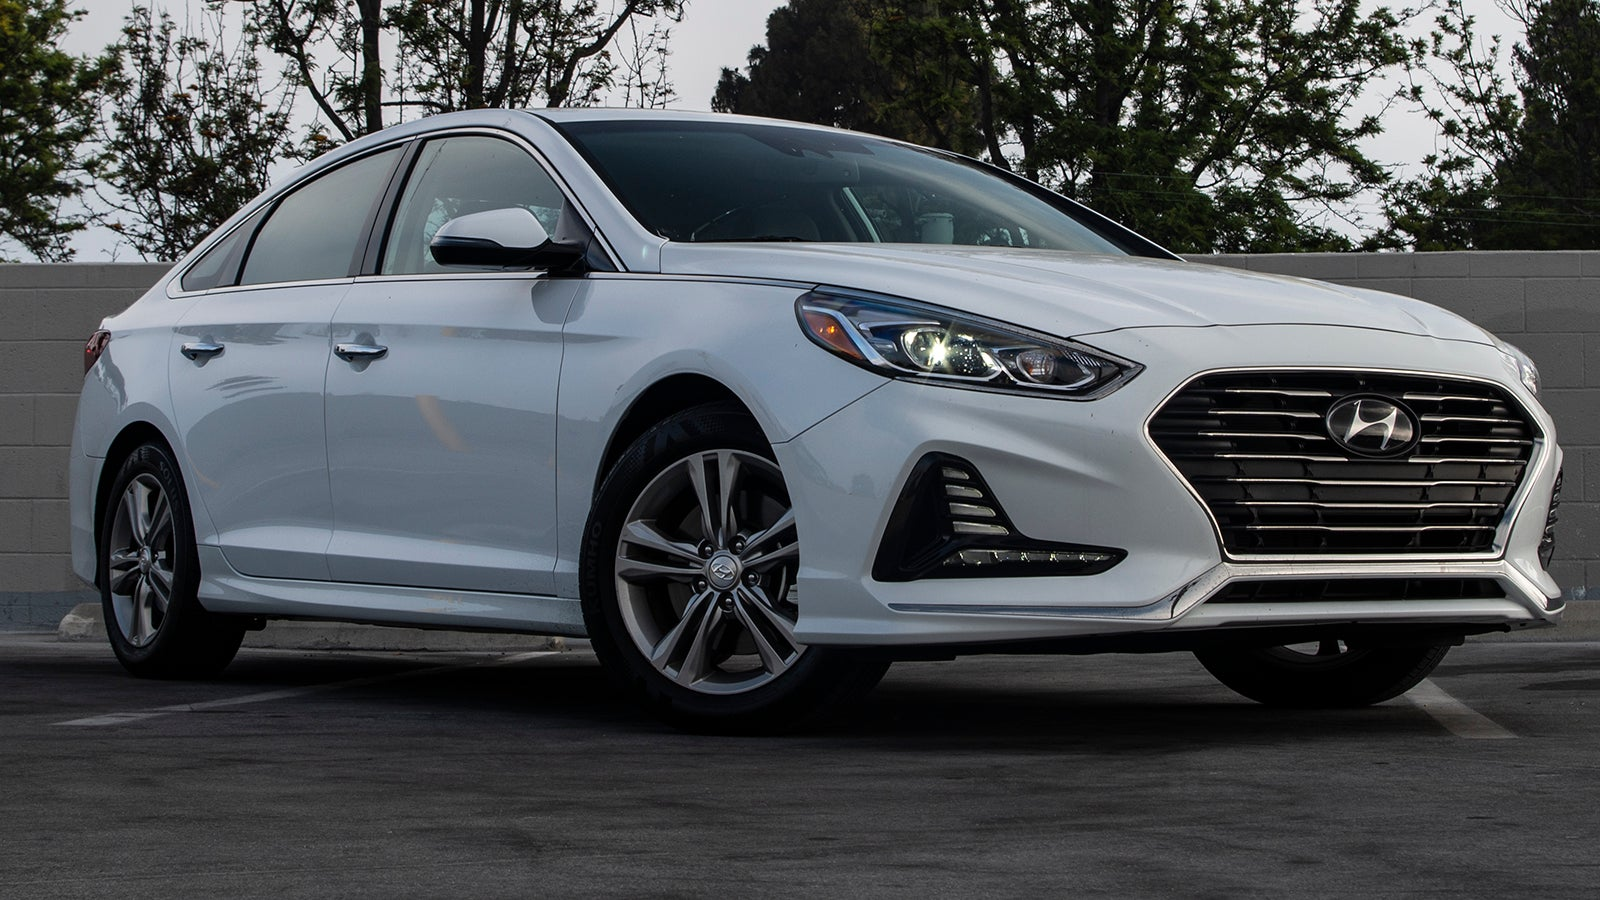 The 2018 Hyundai Sonata Is The Most User Friendly Car I've Driven